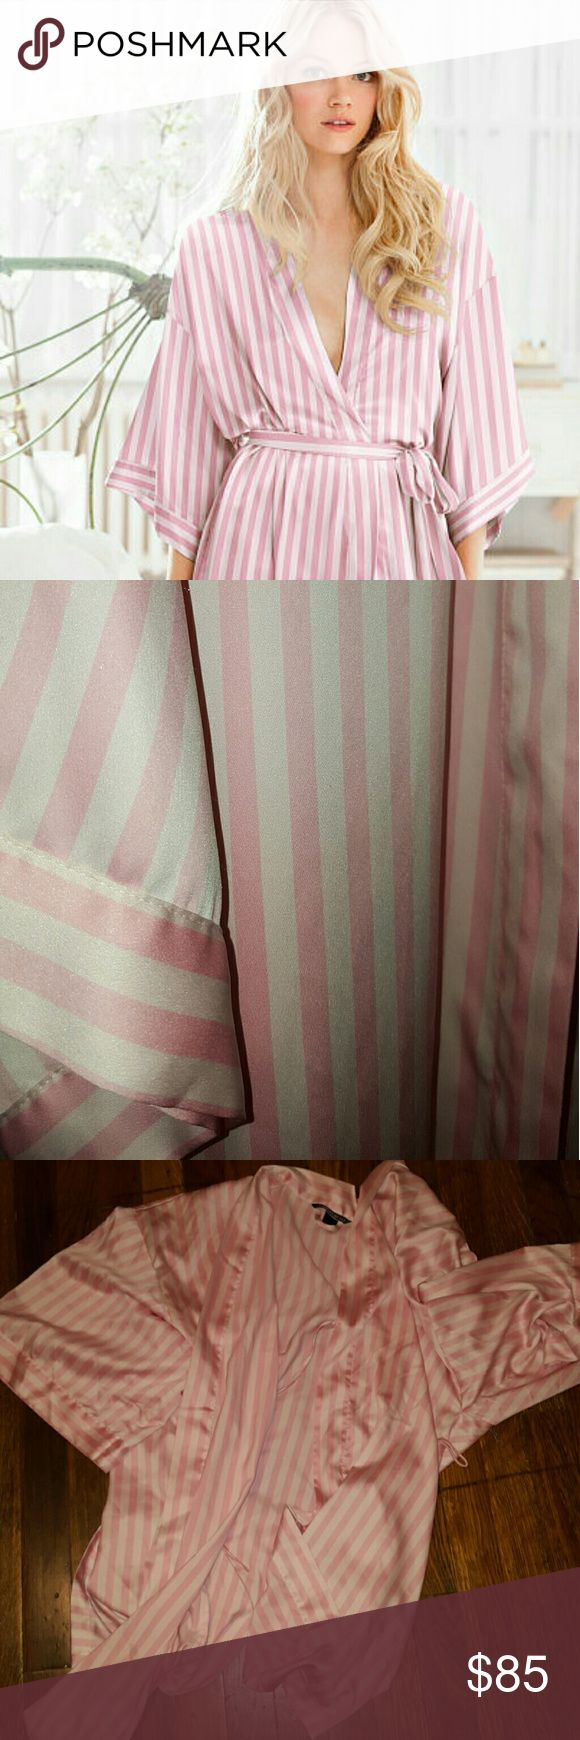 SALE Victoria's Secret striped robe L/M No longer selling striped robes in official website. Iconic pink stripe. Material is polyester. Comes with two pockets. Pre loved item. Selling because I have too many robes. Bought at Victoria's Secret fall 2016.  Only worn a couple of times. Item will be hand washed and steamed , ready to go. Smoke and pet free home. I have many Victoria's Secret items and other nice items in my closet. Make an offer, bundle and save! Free makeup Bag from Sephora…